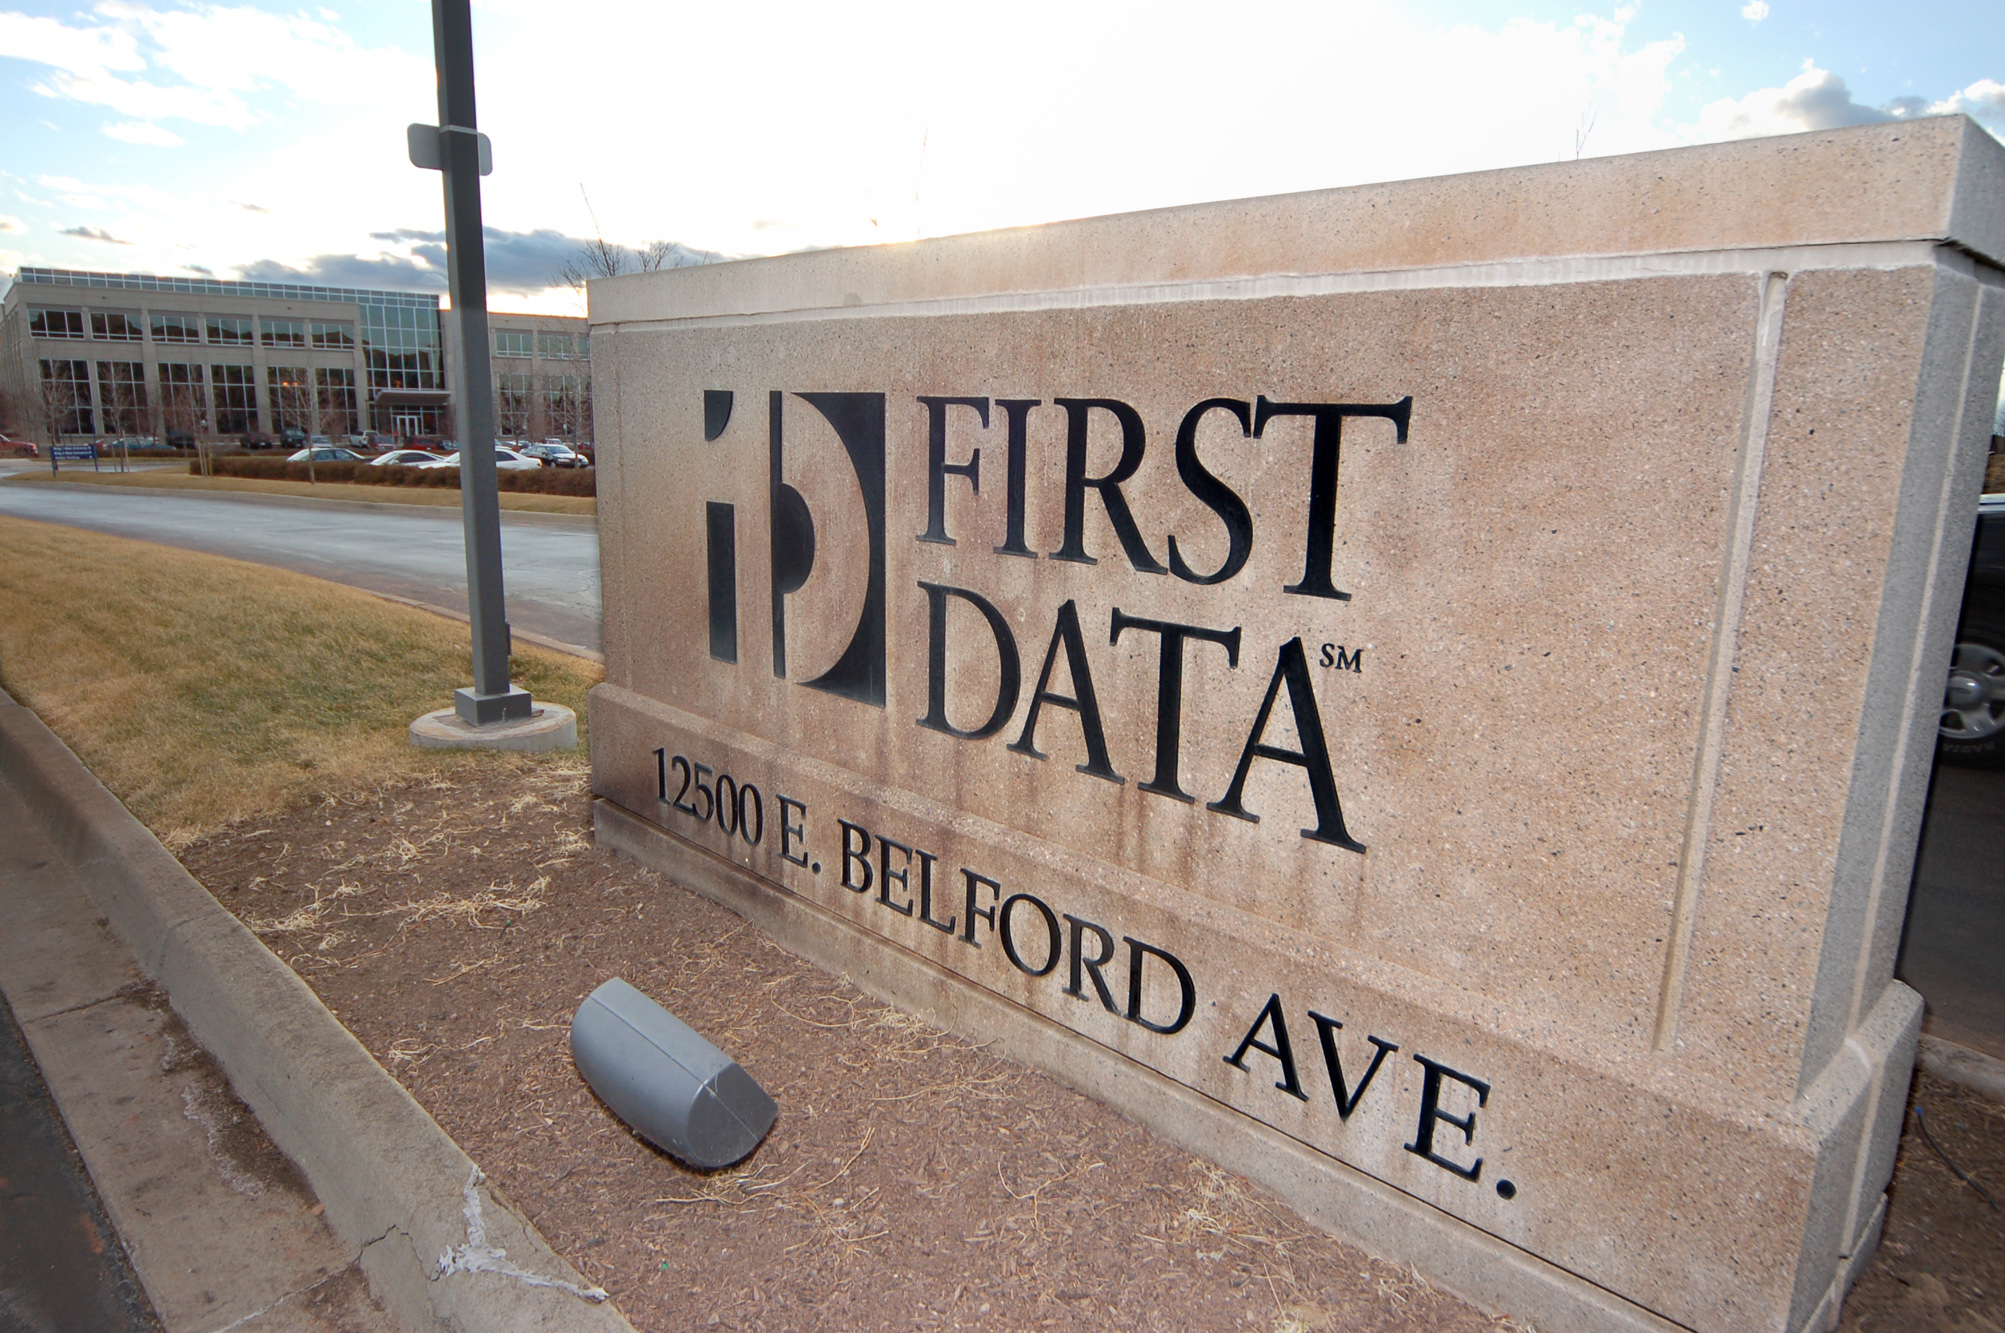 The First Data Corp. campus, south of Denver Colorado, is pi